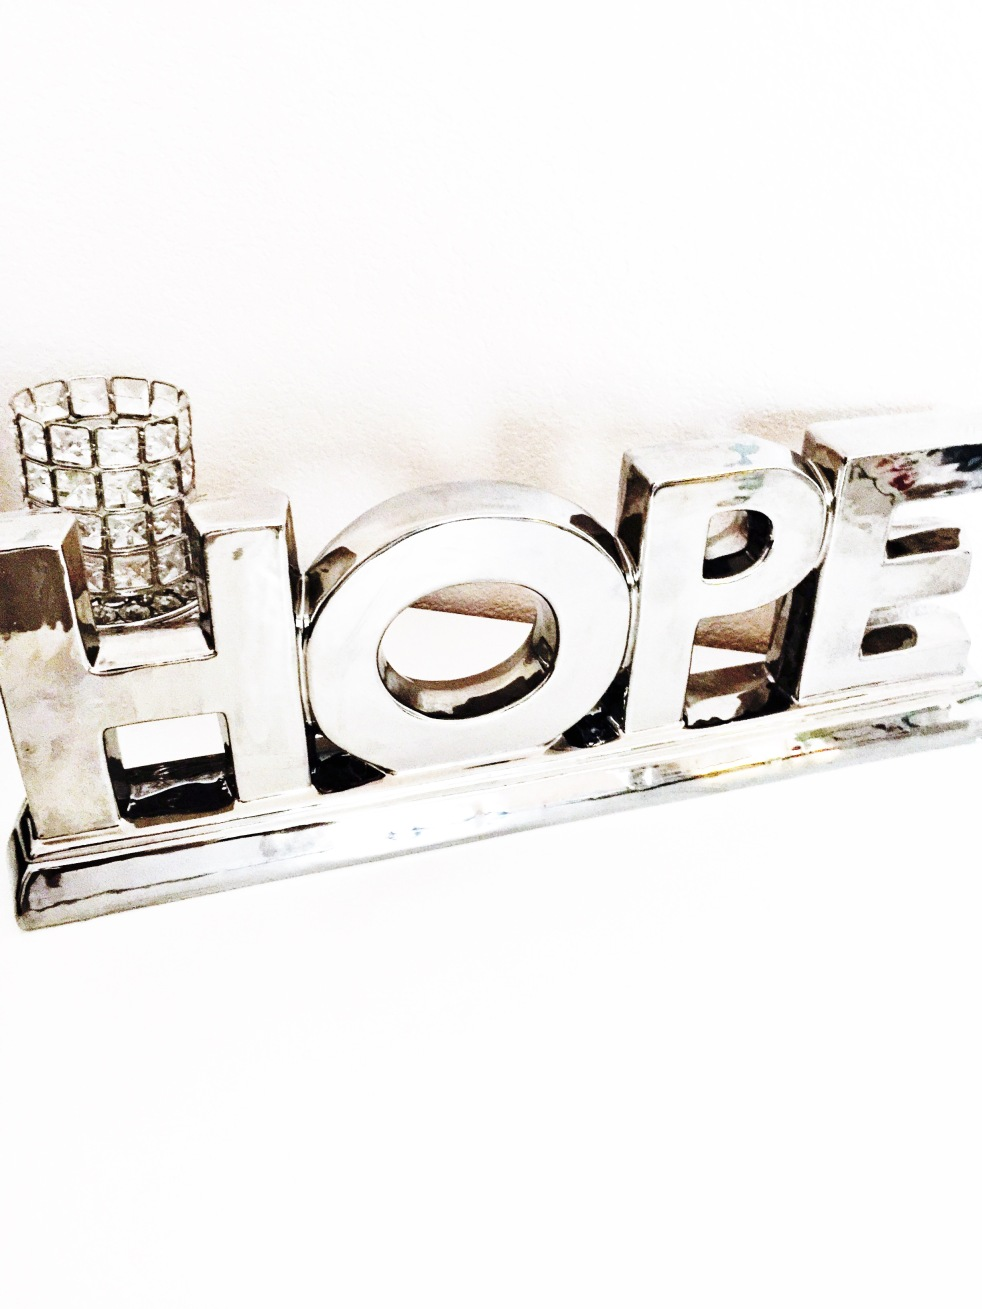 hope-can-be-found-in-a-hopeless-place